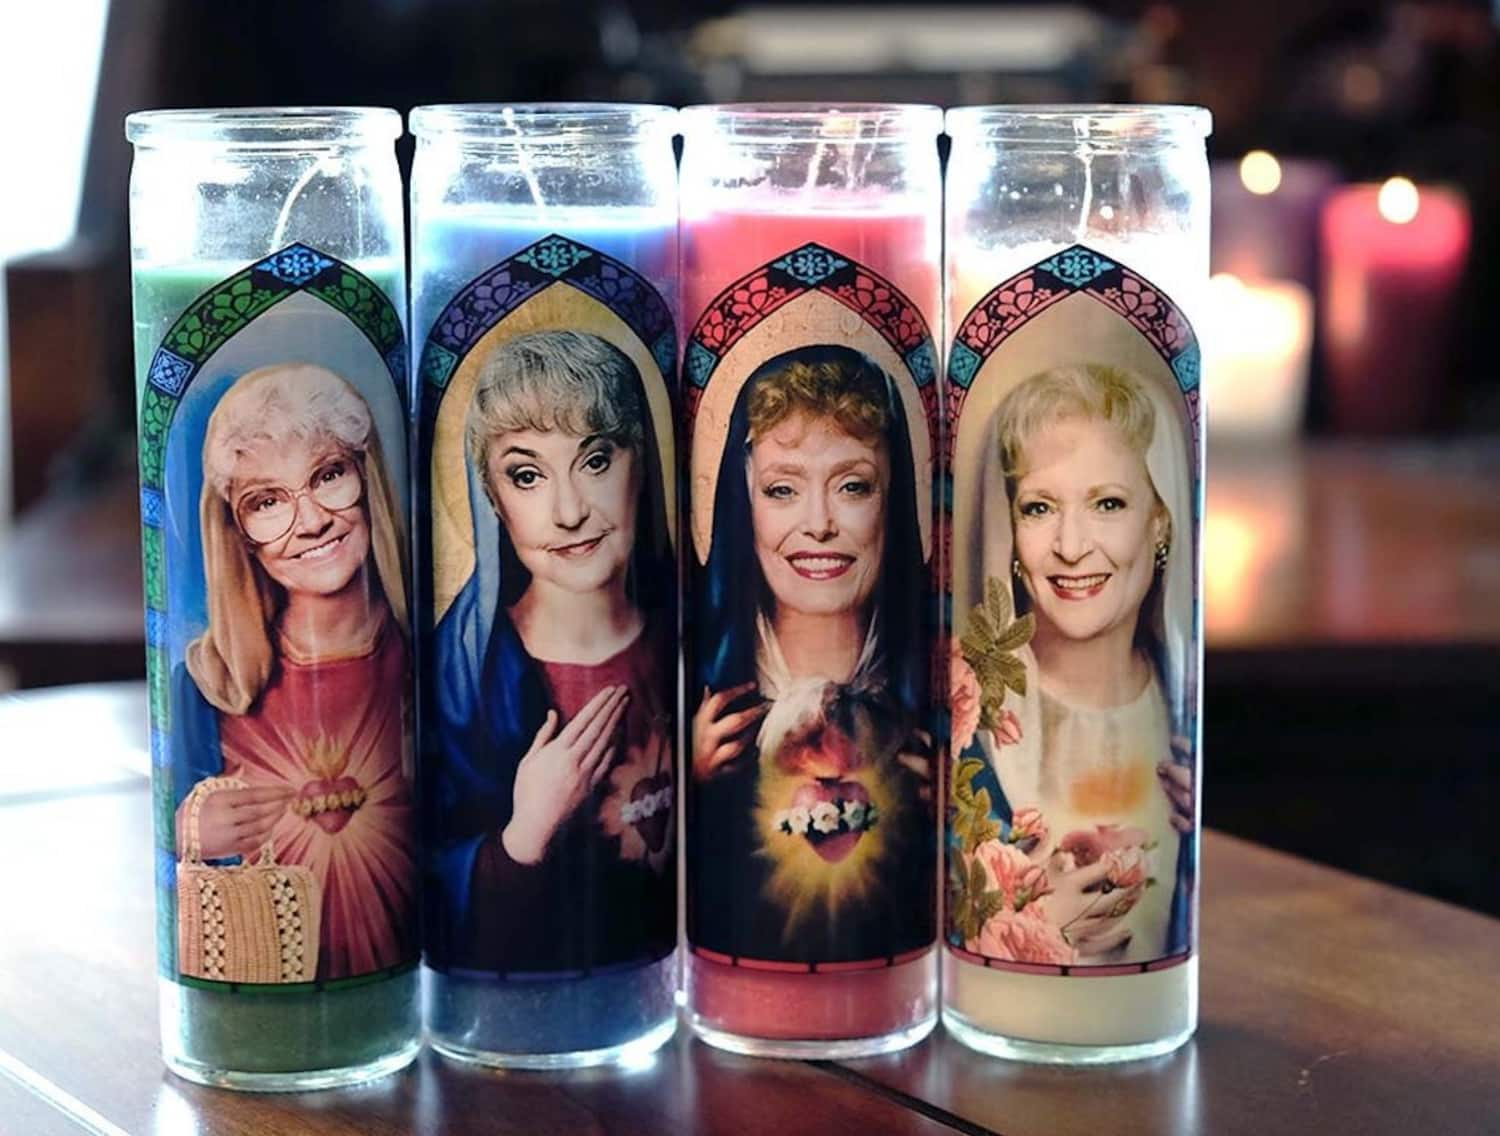 These Golden Girls Candles Are the Perfect Christmas Gift for Your Friends with Old Souls